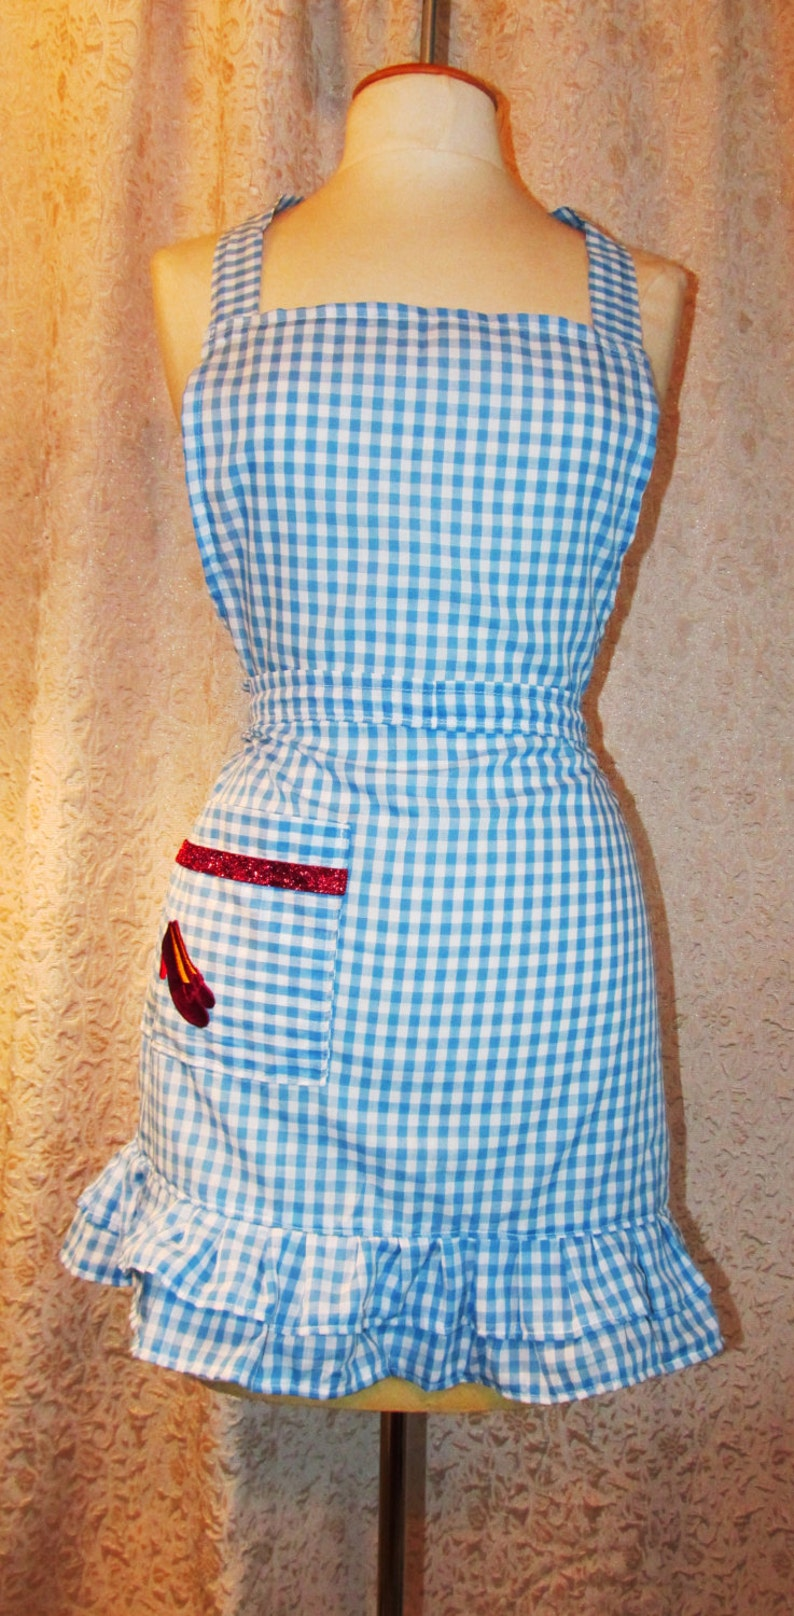 OOAK Fancy Double Ruffle Dorothy Blue Gingham Apron with embroidered Ruby Slippers on pocket